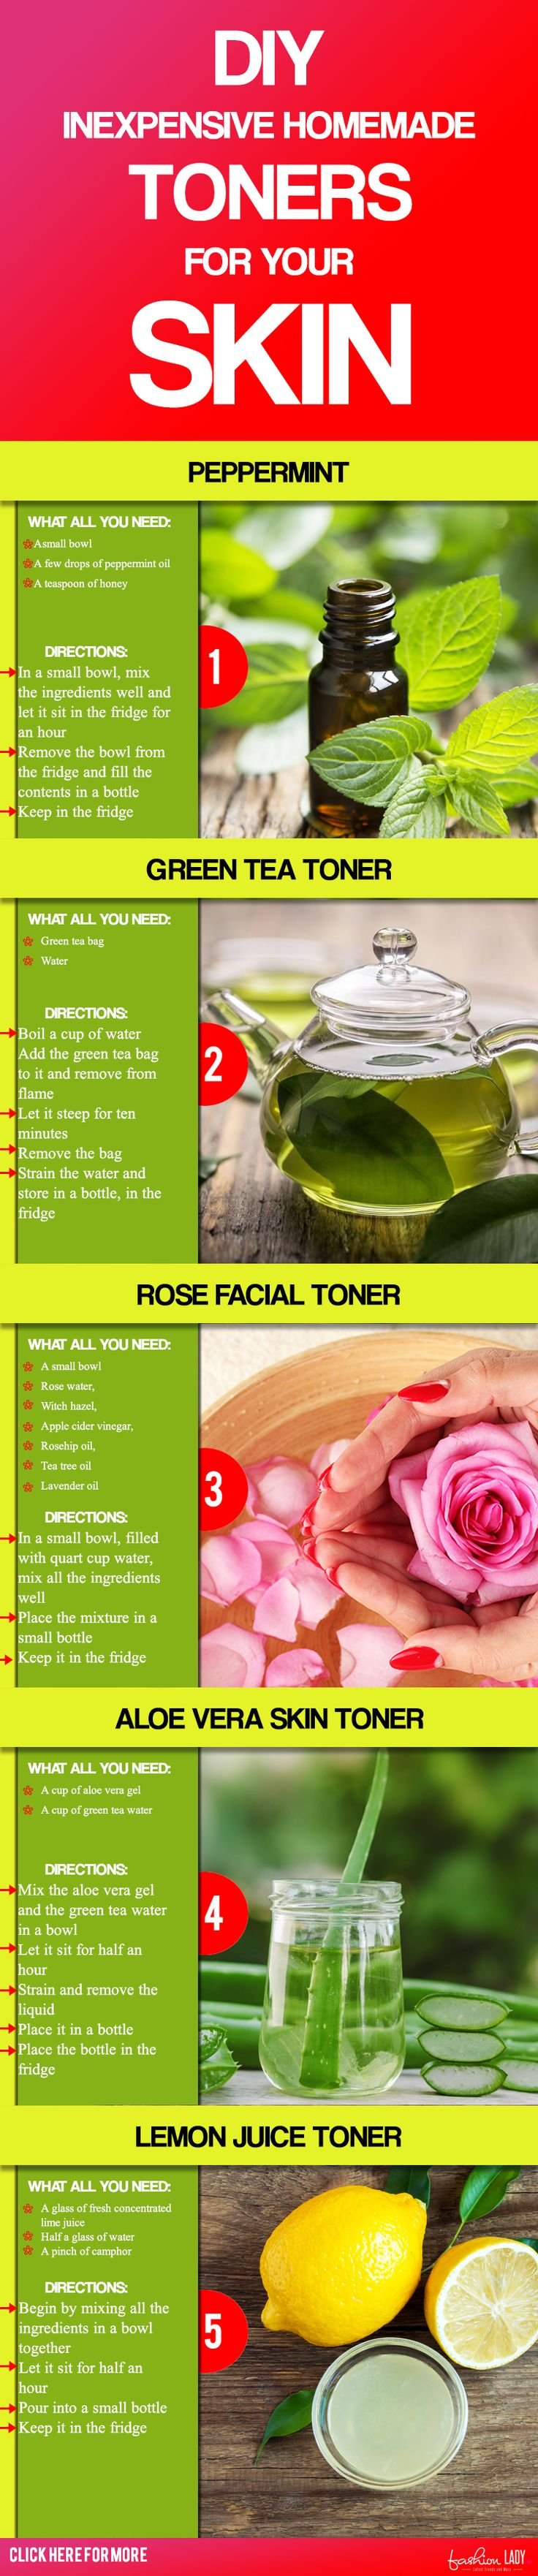 DIY Inexpensive Homemade Toners For Your Skin